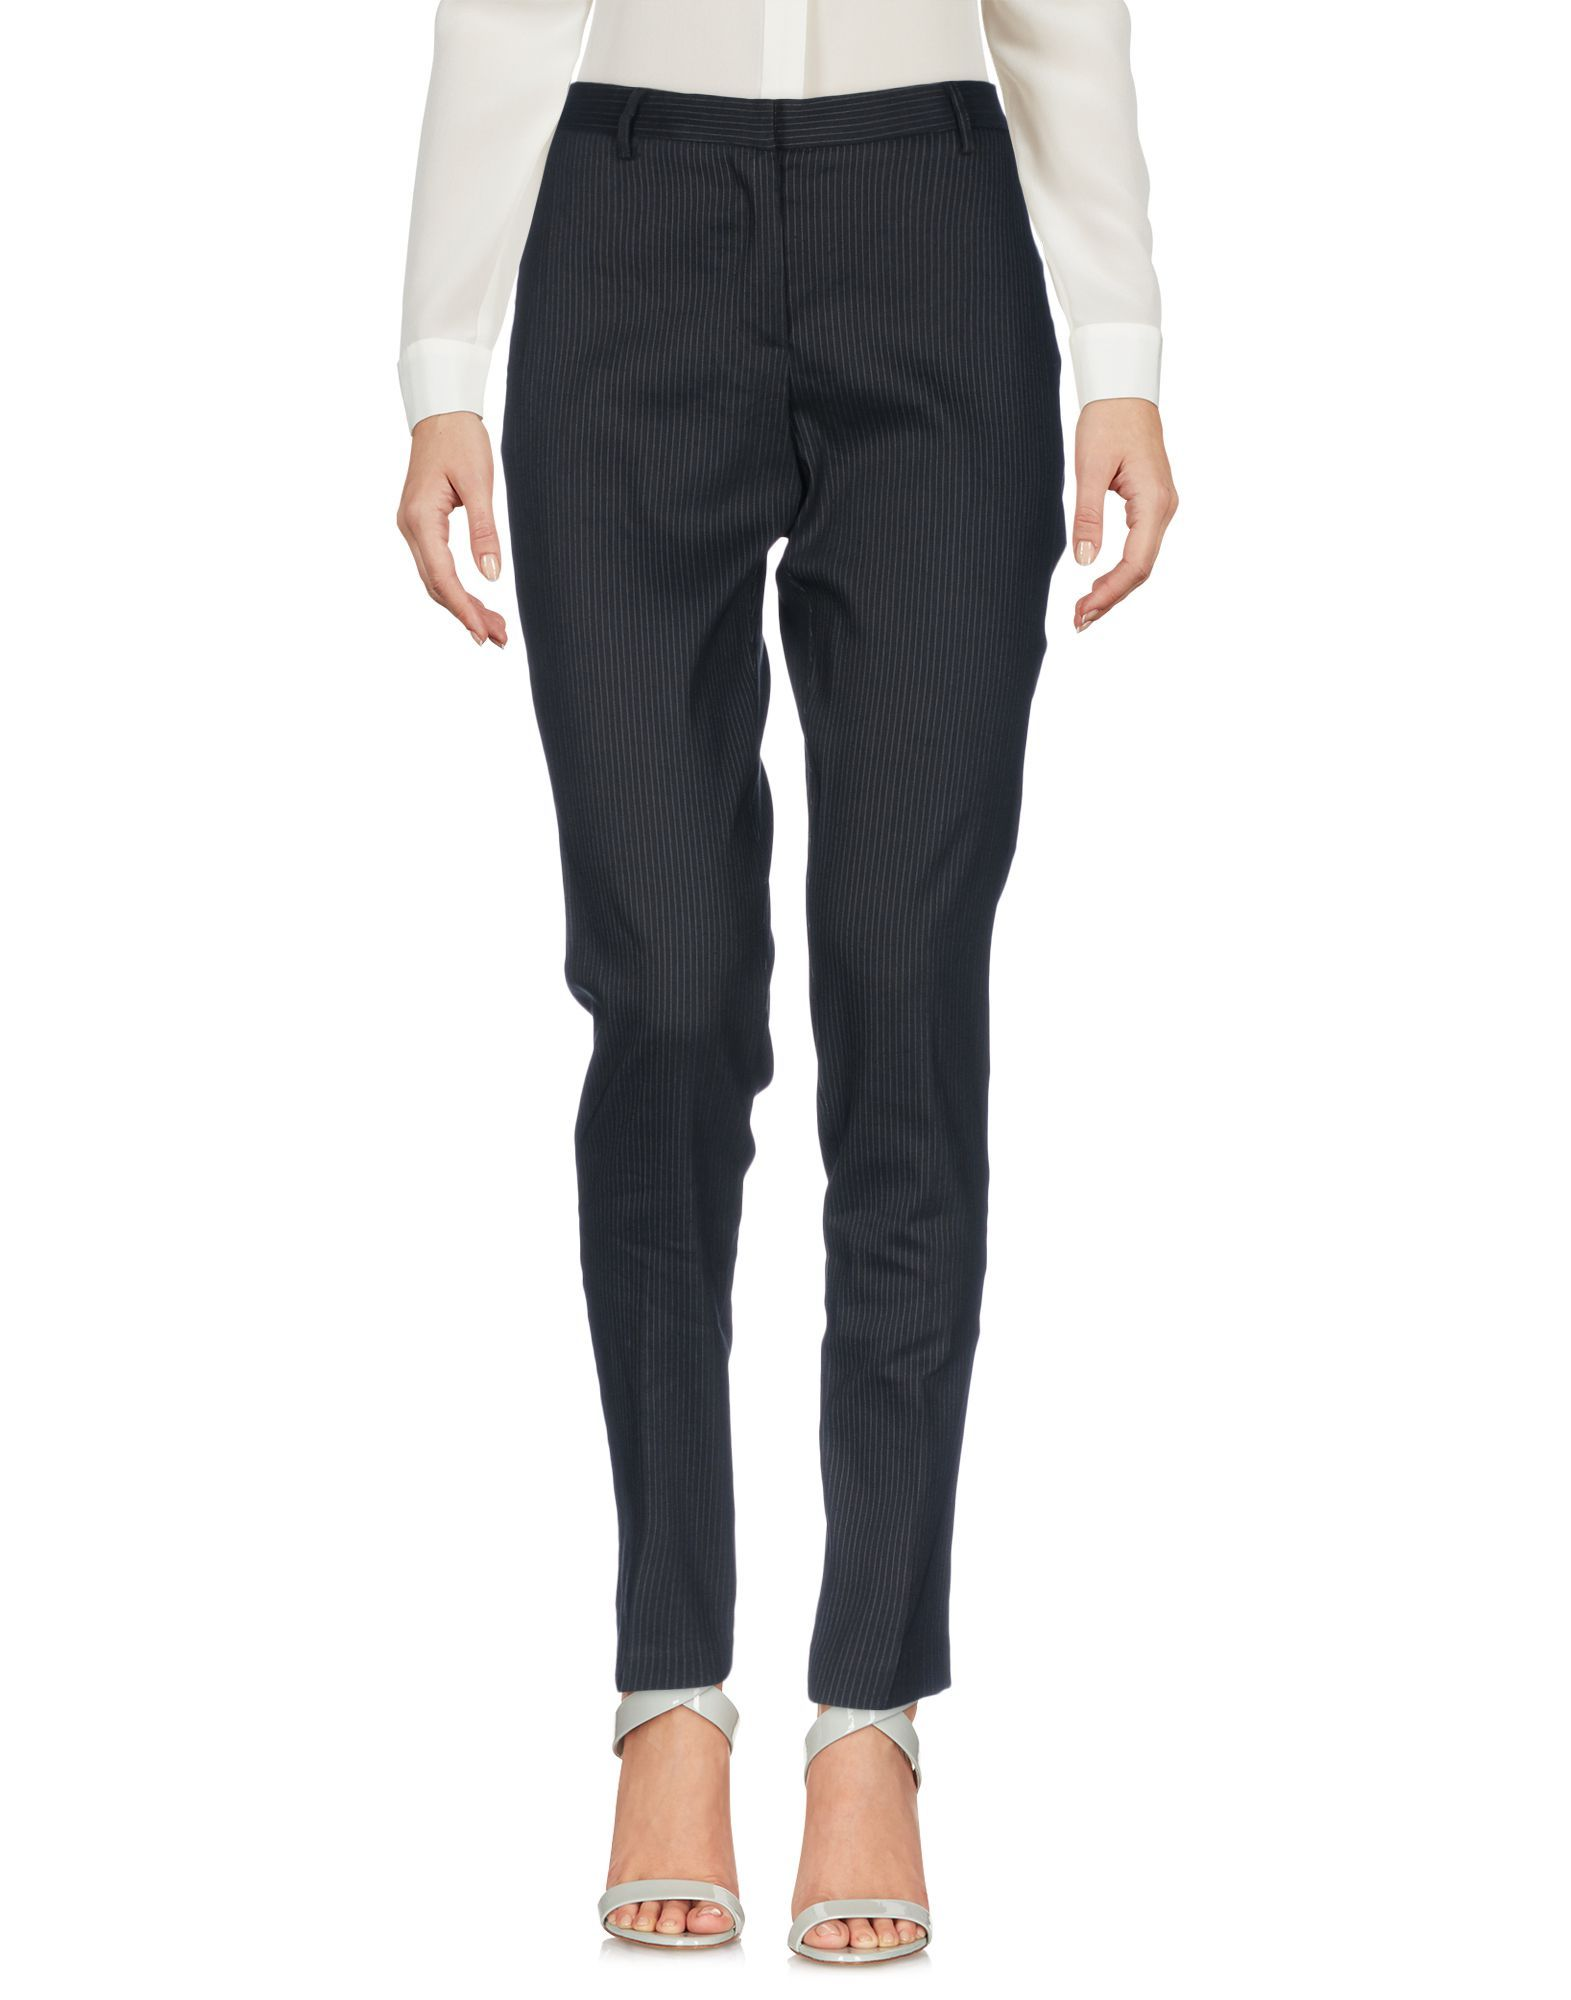 Twinset Black Linen Tapered Leg Trousers